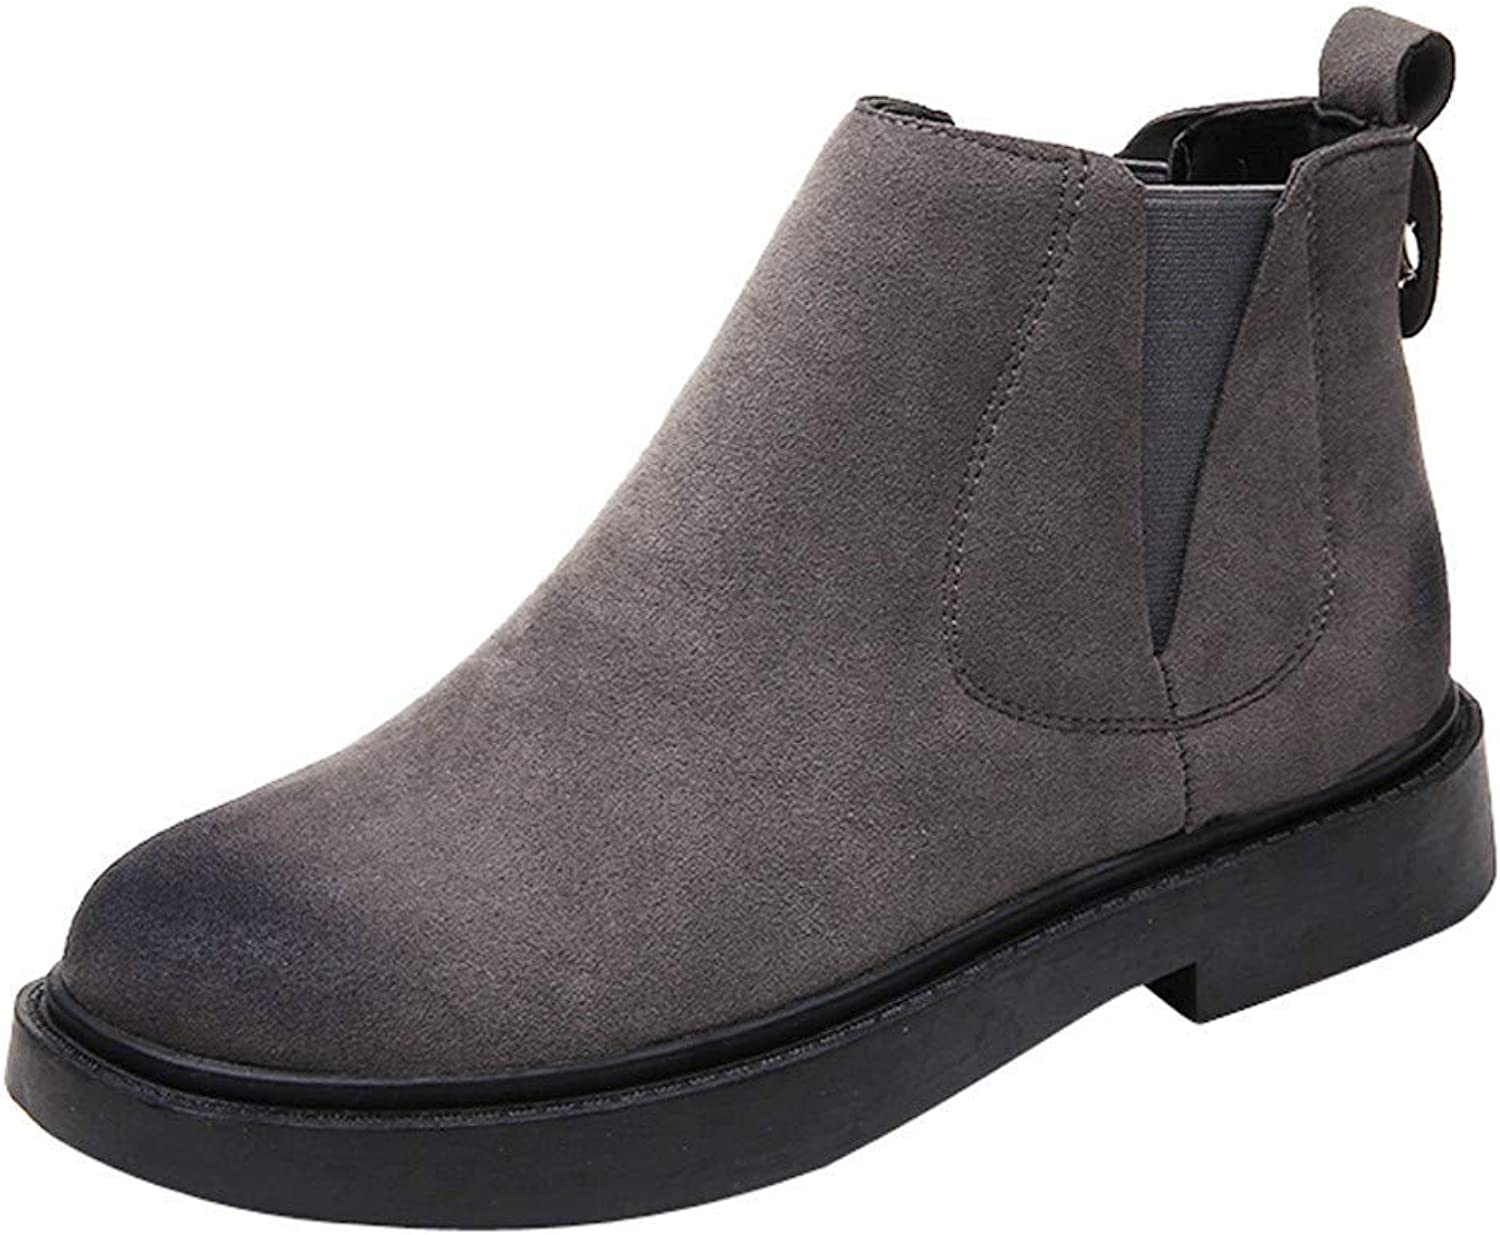 JaHGDU Women's Round Toe shoes Flat Booties Slip on Suede Solid color shoes Martin Boots Super Wild Tight Casual Quality for Womens